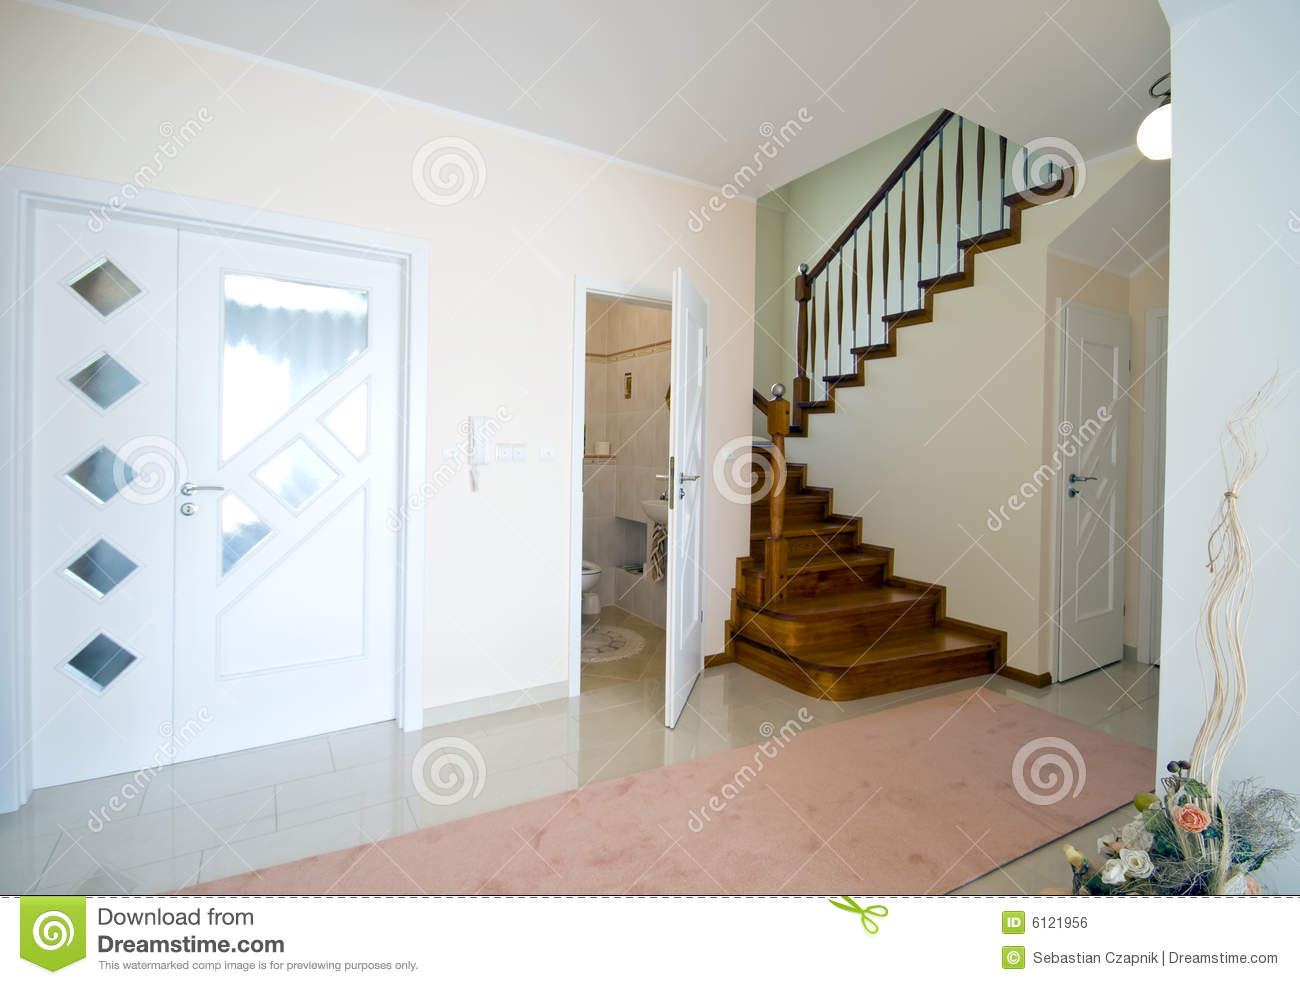 hall of modern home stock photo image of interior stairs. Black Bedroom Furniture Sets. Home Design Ideas